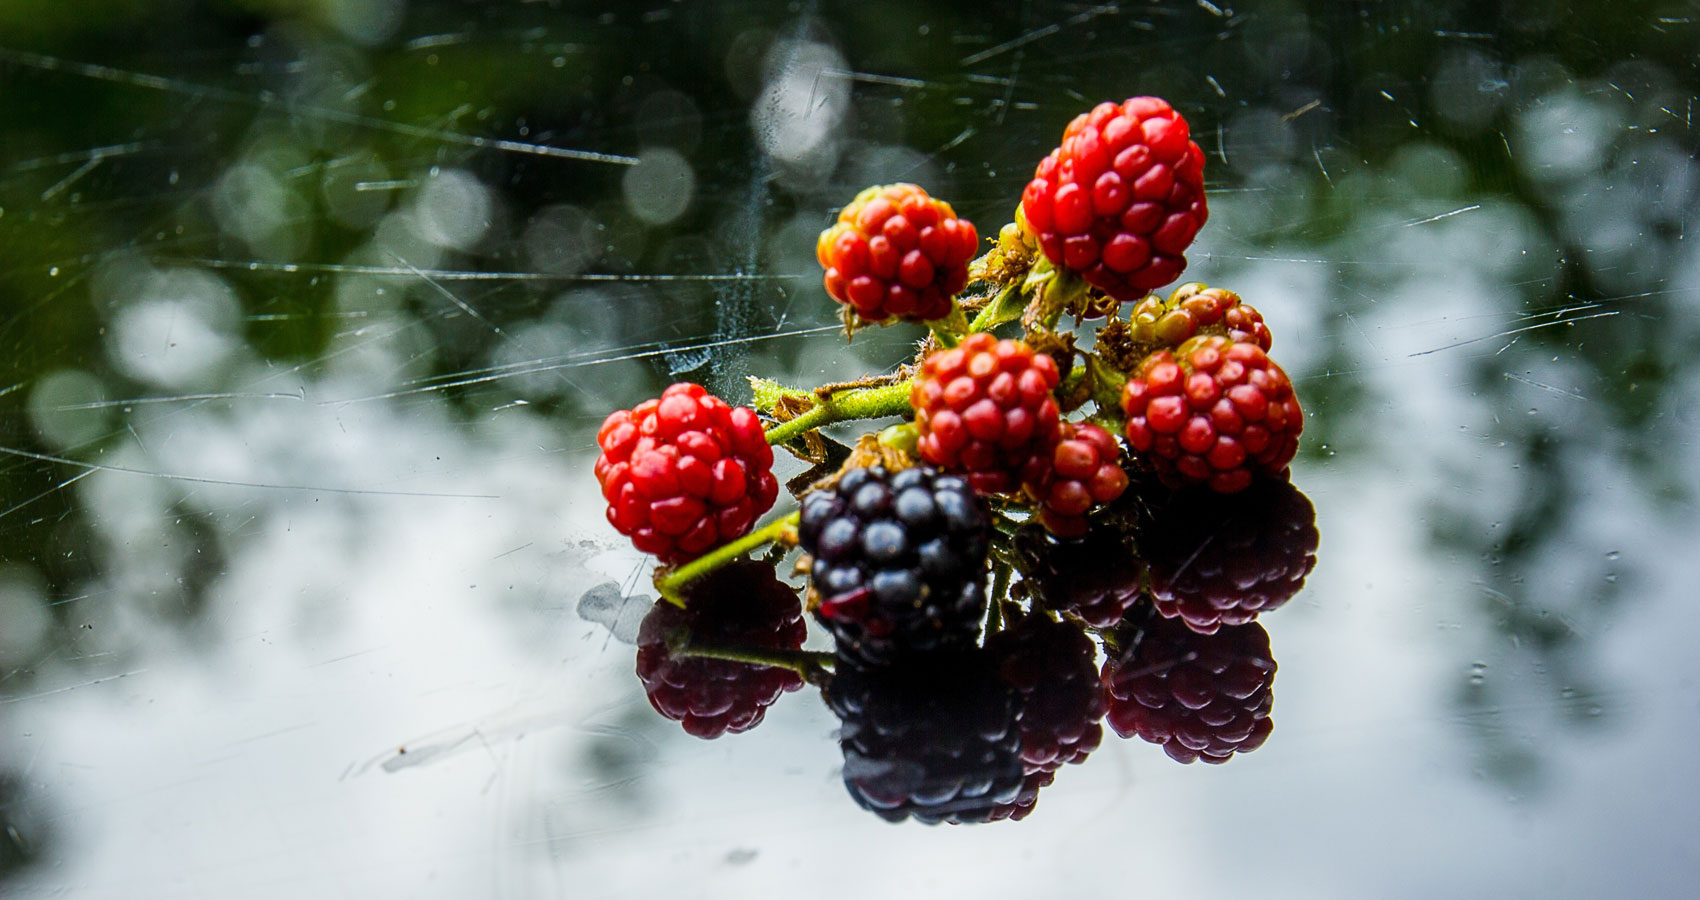 Blackberry-Picking by Seamus Heaney at Spillwords.com